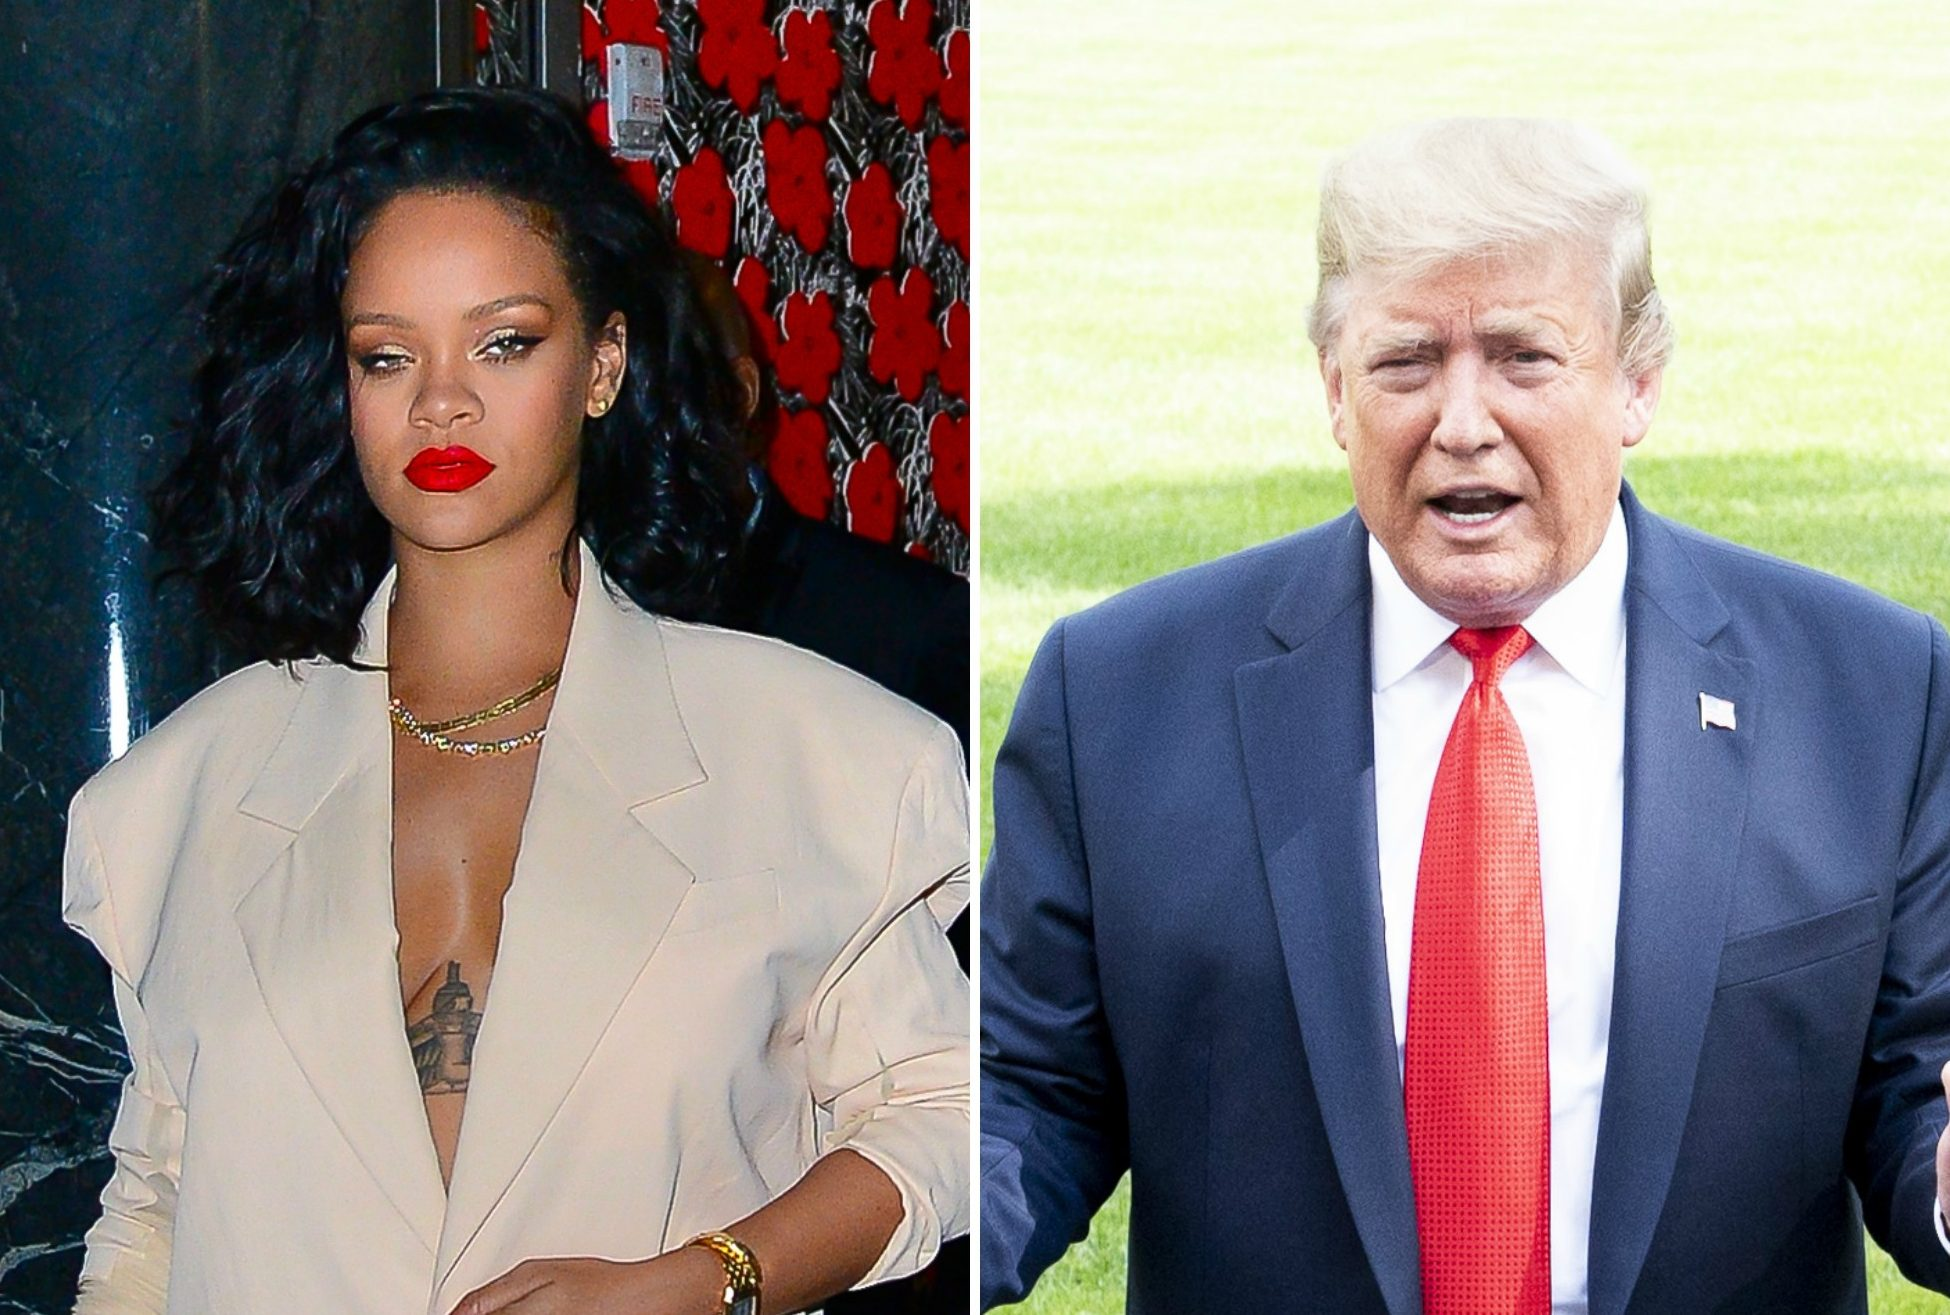 Donald Trump and Rihanna side-by-side